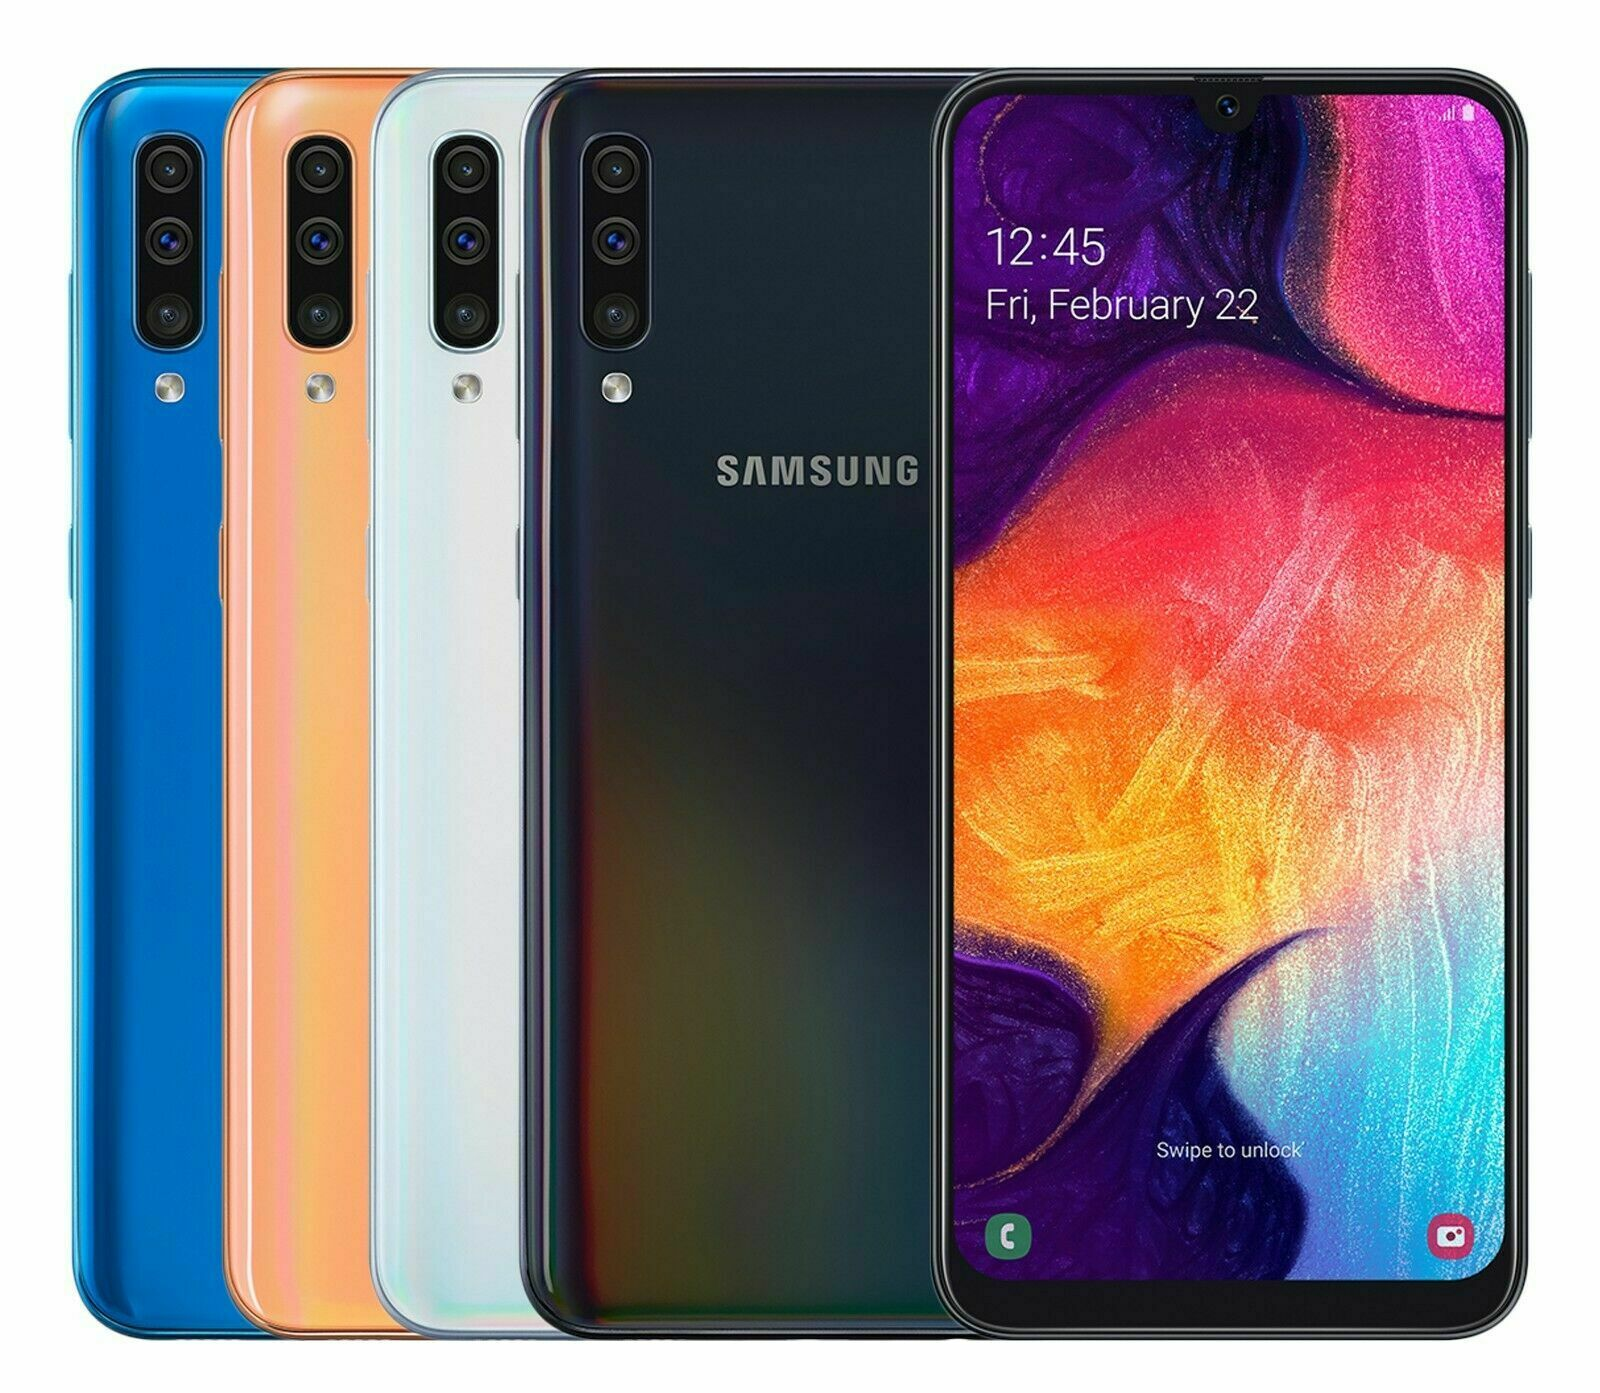 Android Phone - Open BOX Samsung Galaxy A50 SM-A505F/DS 128GB LTE Unlocked International Model